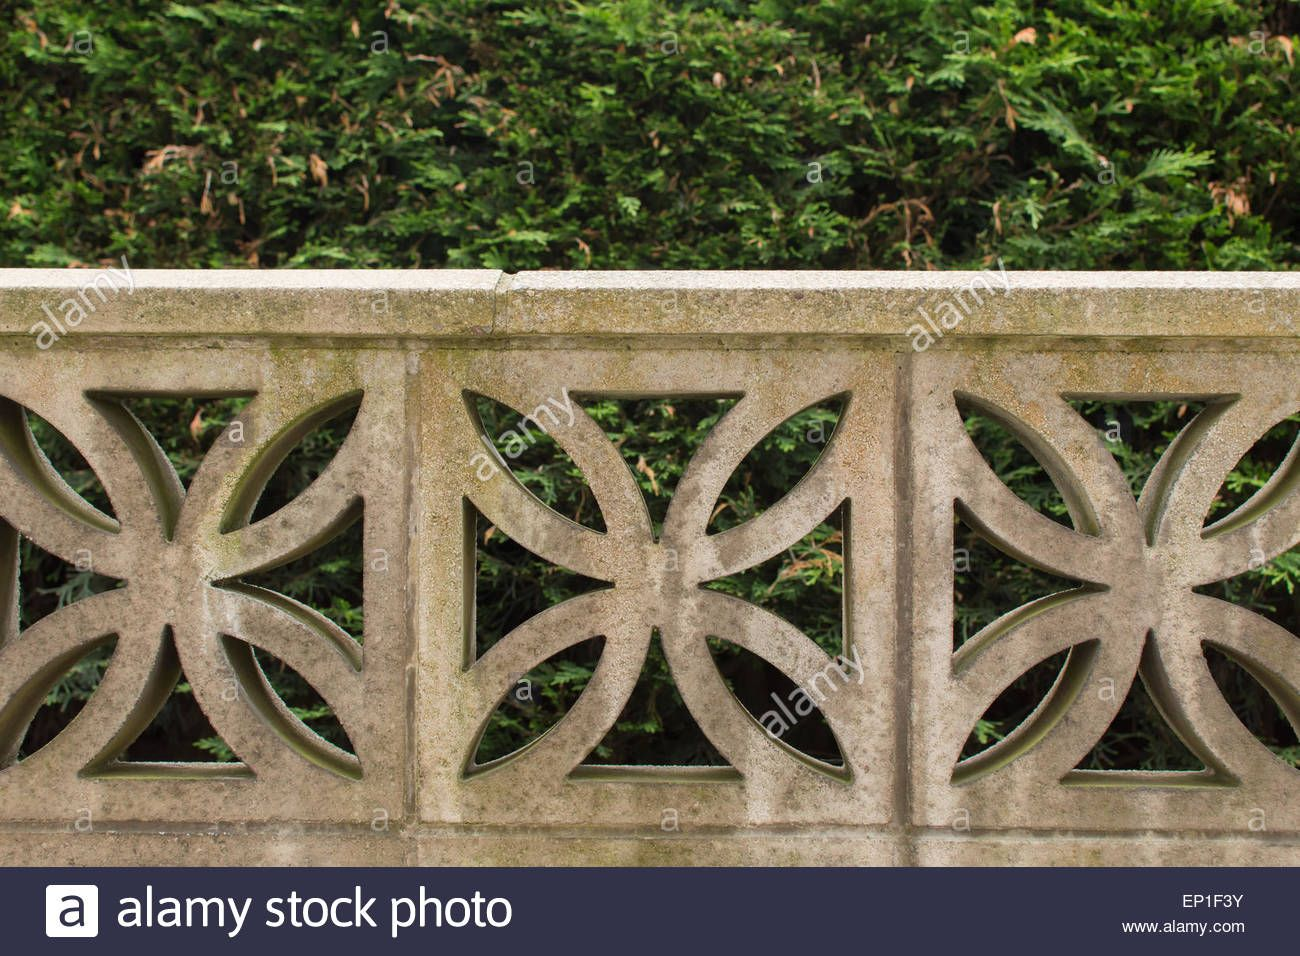 Garden wall built from decorative concrete blocks Stock Photo ...